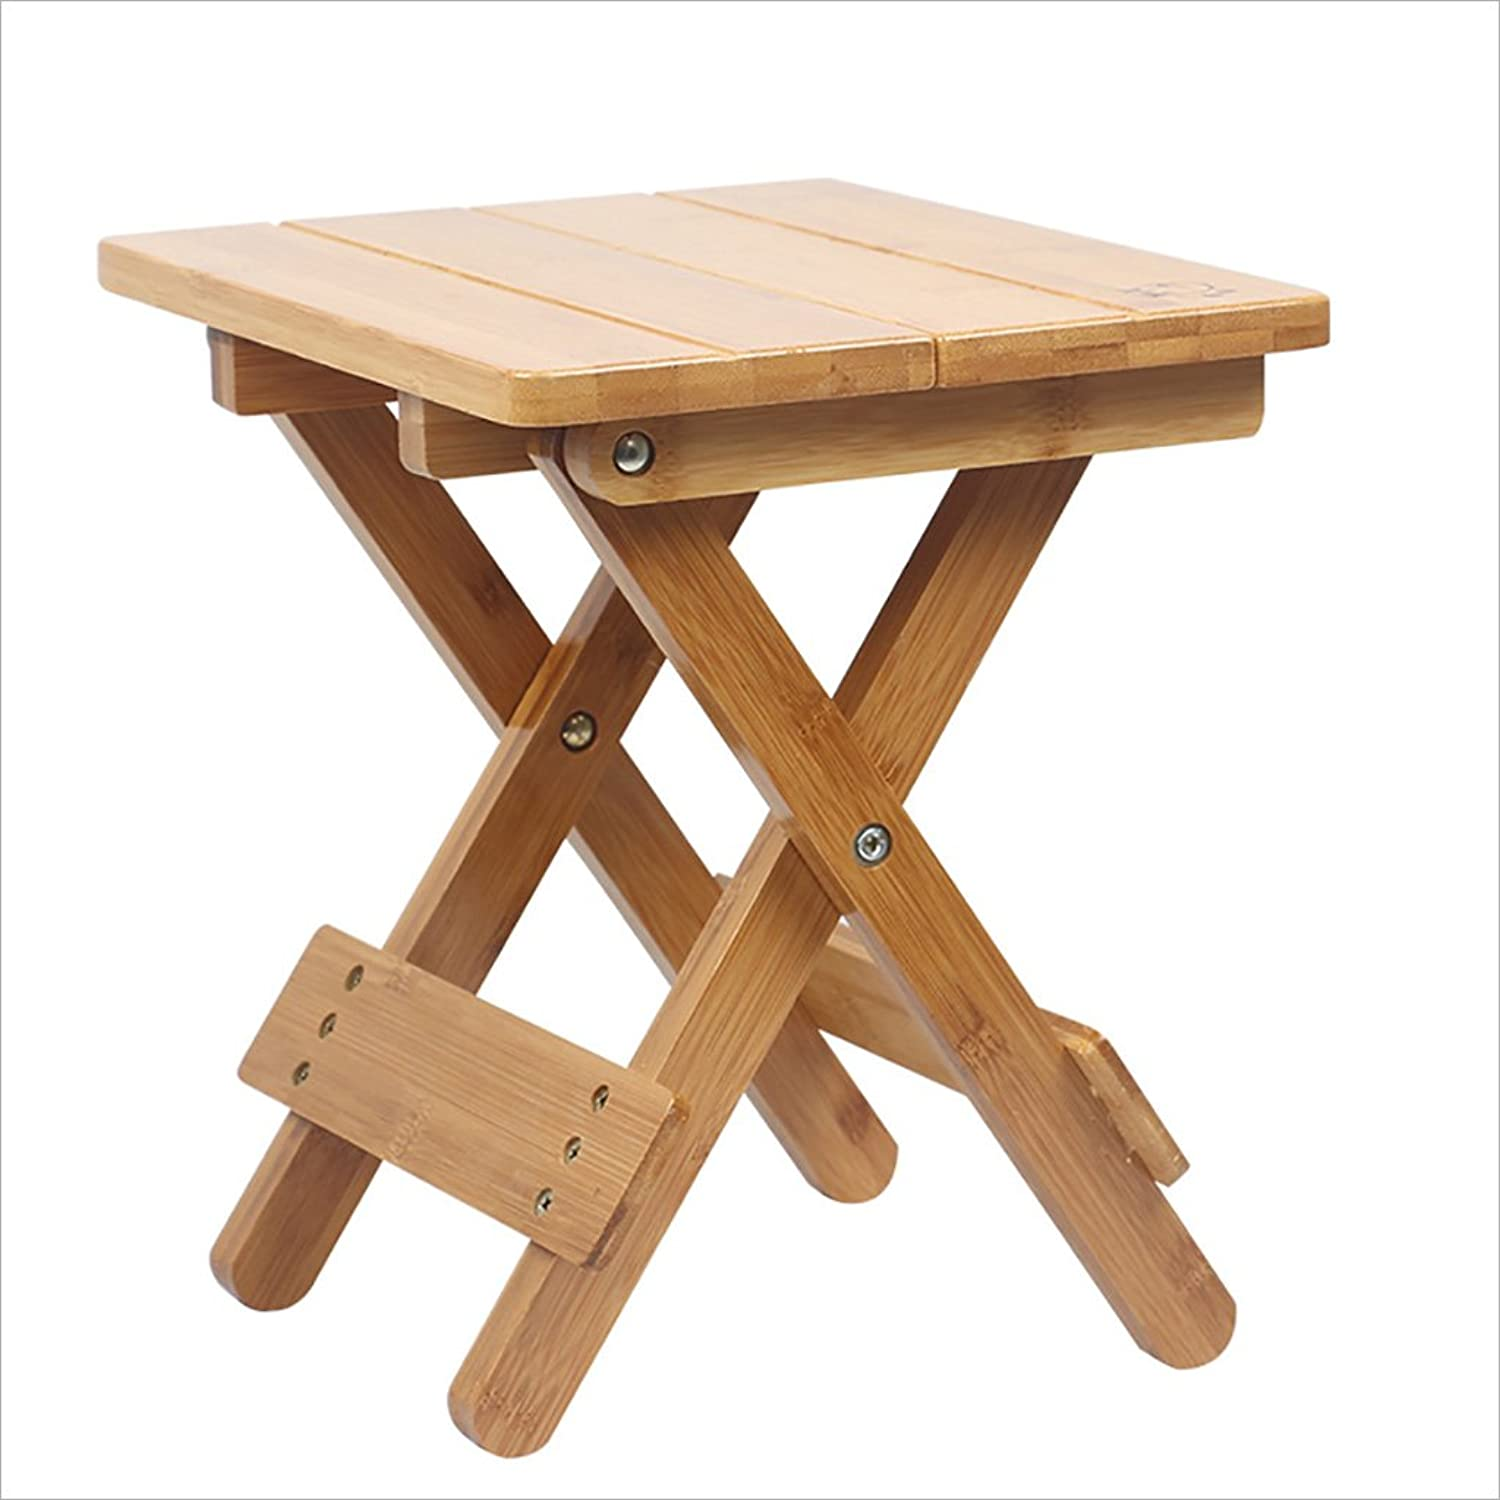 Stool Chair European Stools Footstools Stools shoes Benches All-in-All Stool Bedroom Stools Creative Stool Bamboo (35  35  35CM) (color   B)